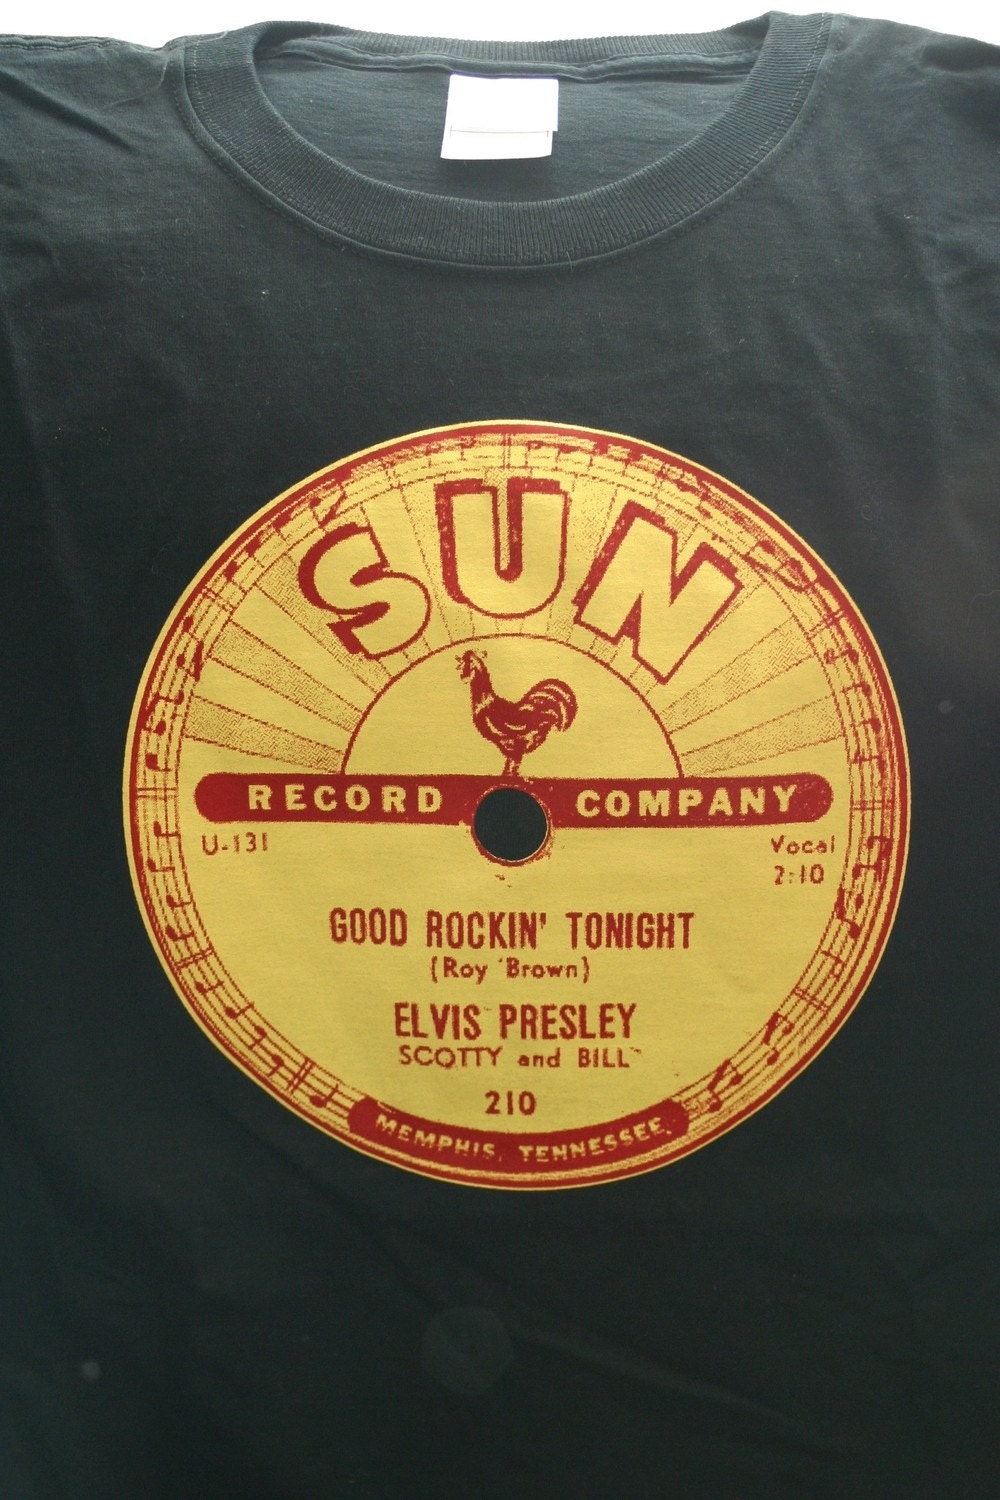 Elvis presley sun records classic 78 rpm record label by for Classic house record labels